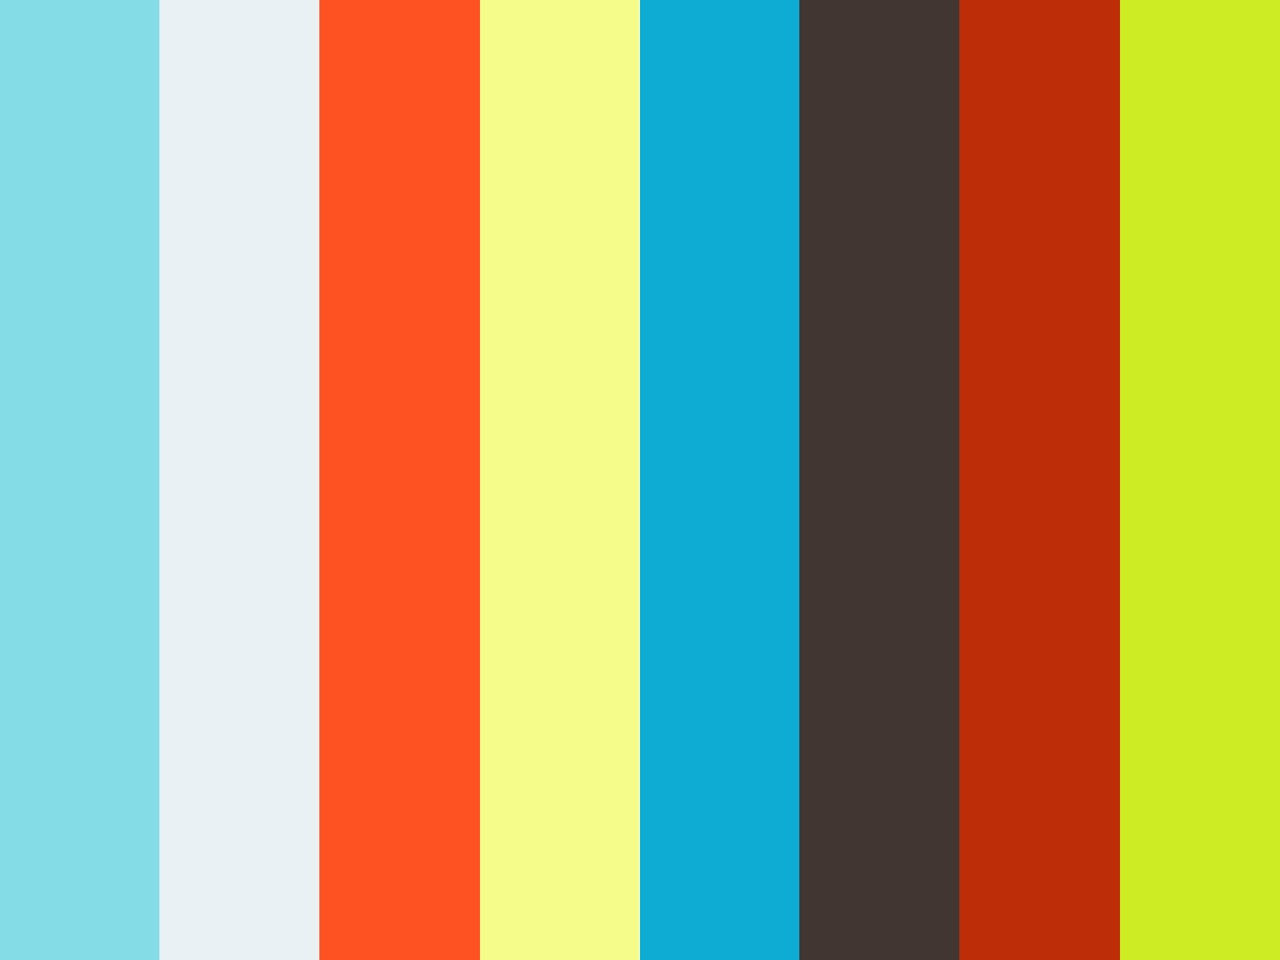 Villareal v Everton warm up